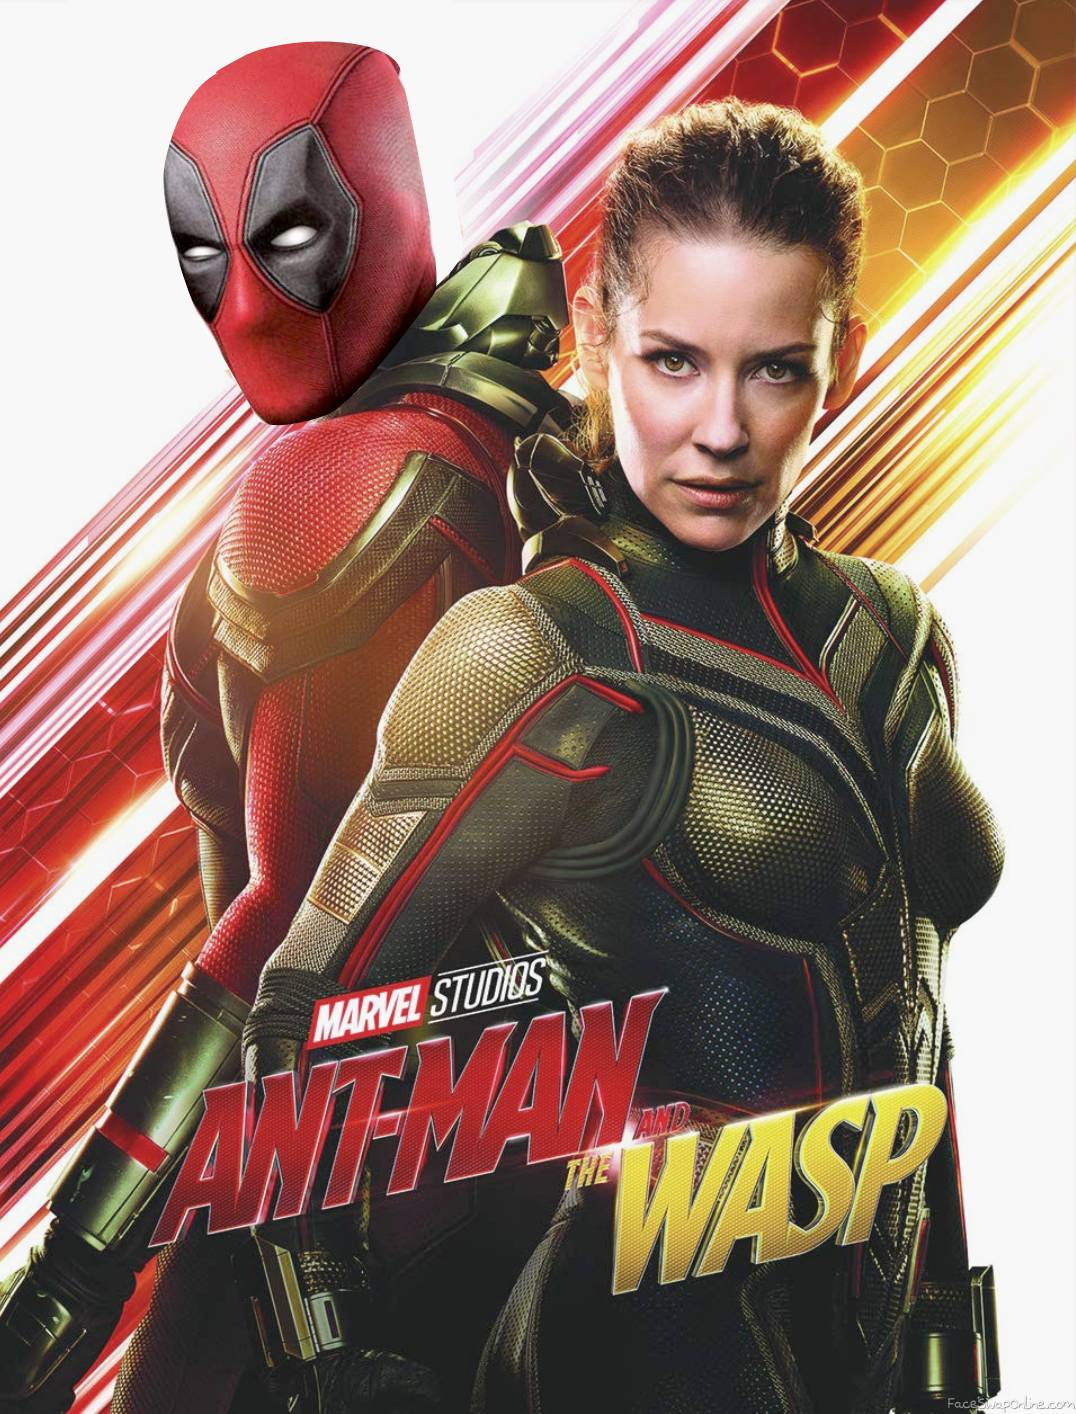 Deadpool and the Wasp